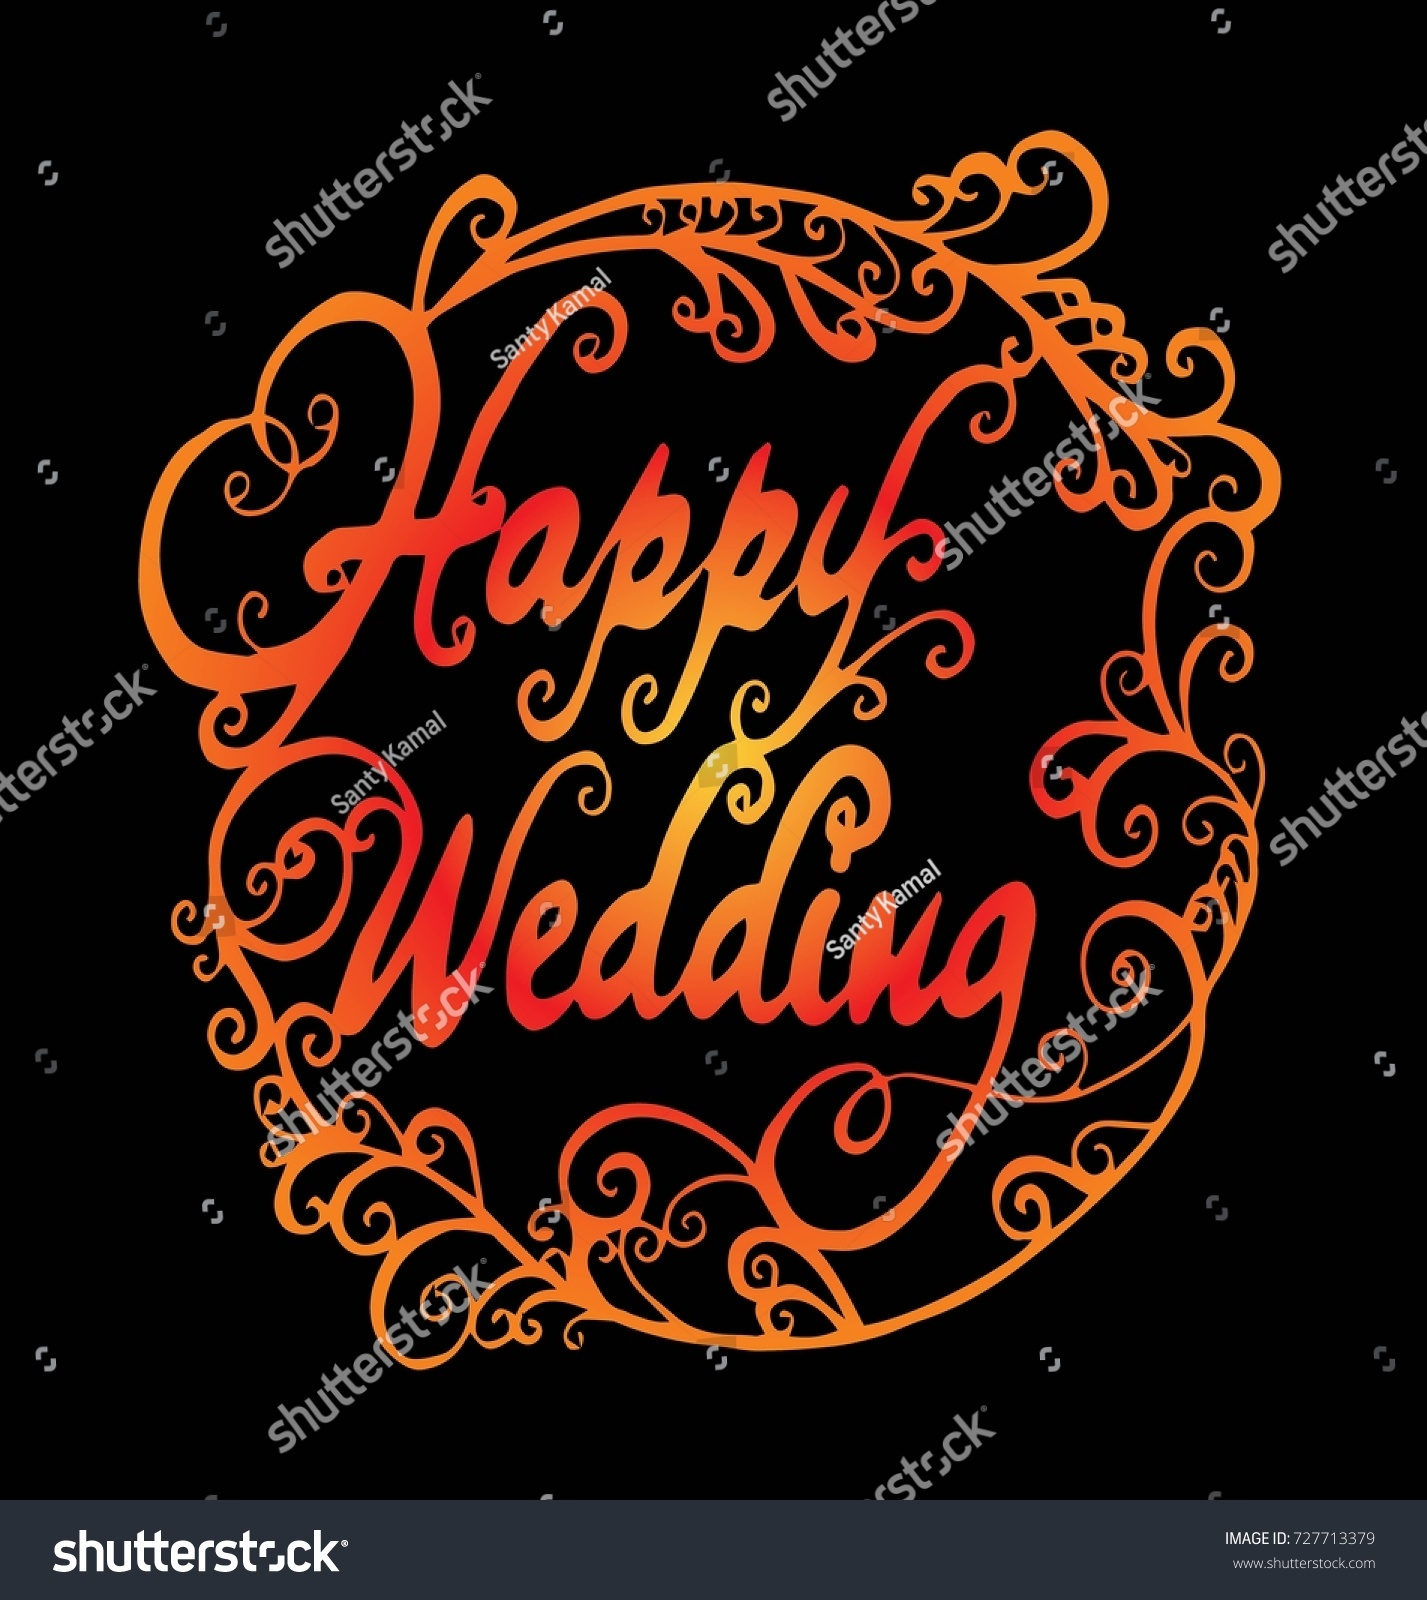 Happy Wedding Hand Lettering Text Calligraphy Stock Vector (Royalty ...